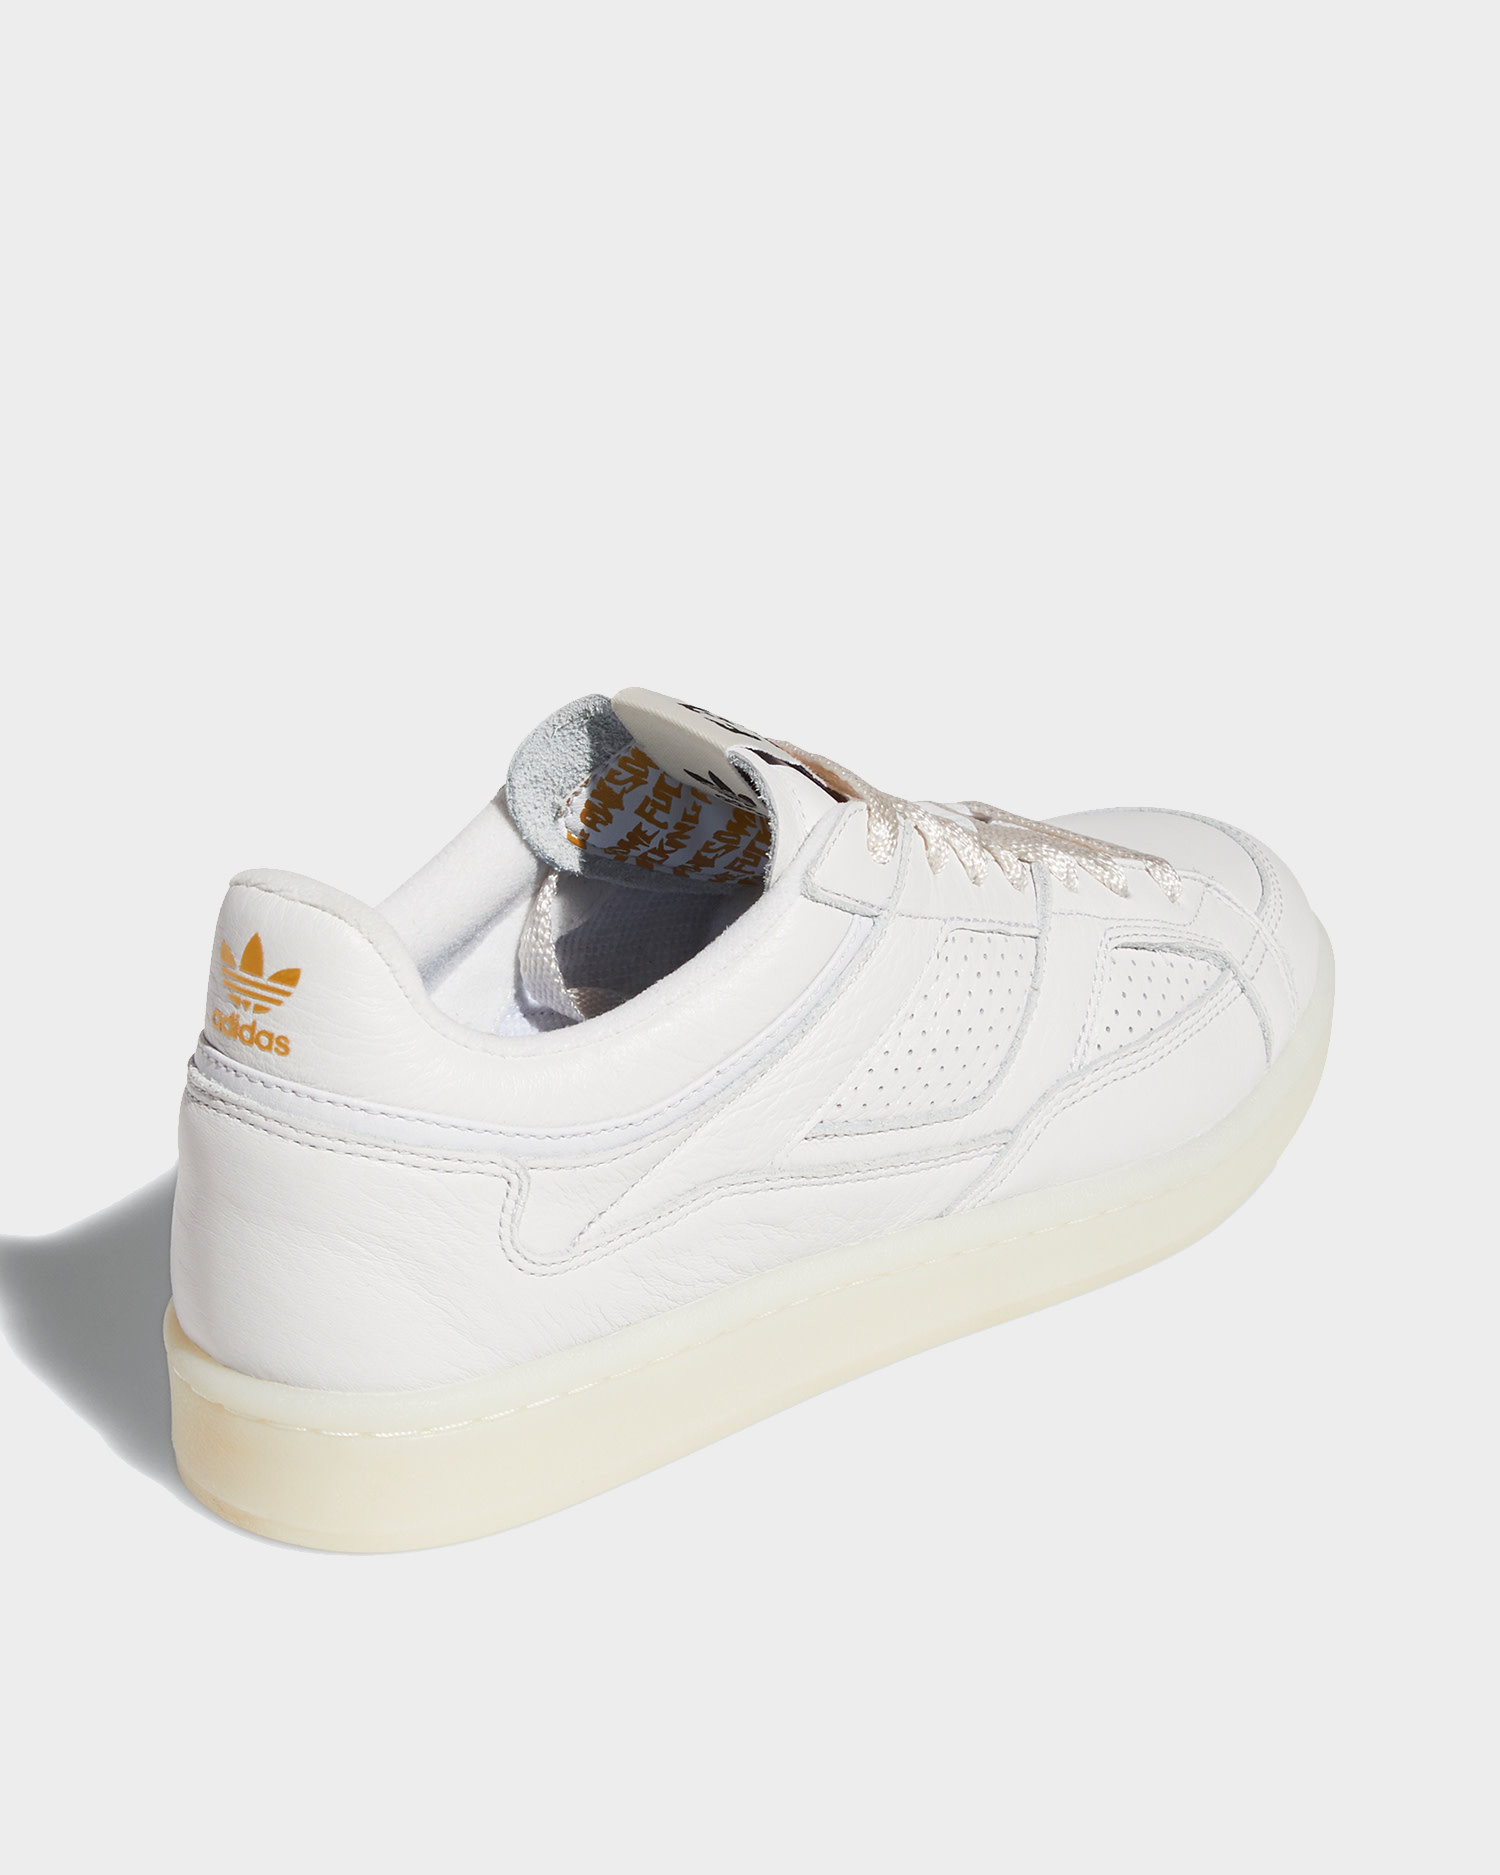 adidas Skateboarding x Fucking Awesome Experiment 2 white/white/gold